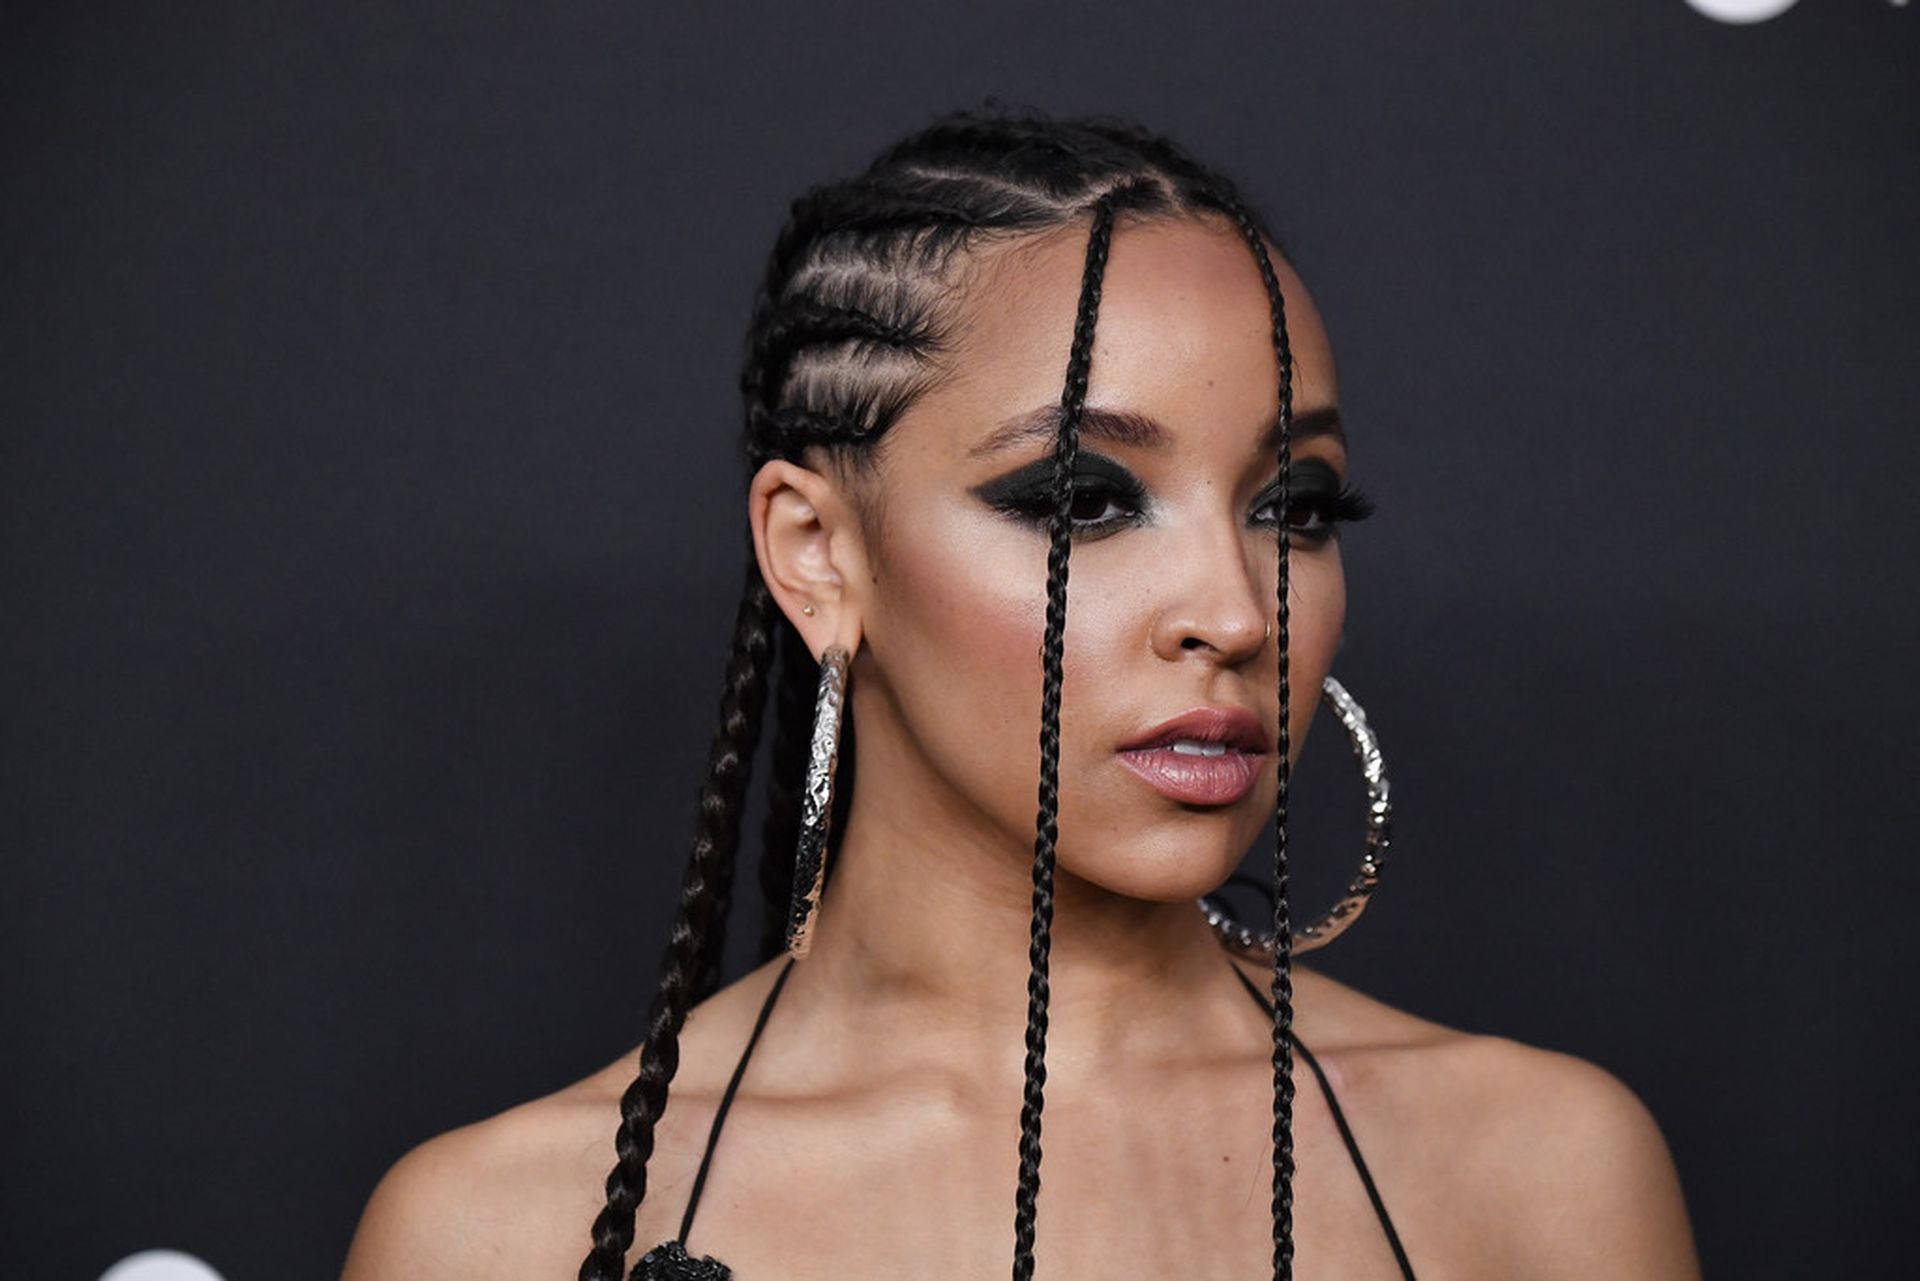 Tinashe Flaunts Her Tits At The Spotify Best New Artist Party 0002